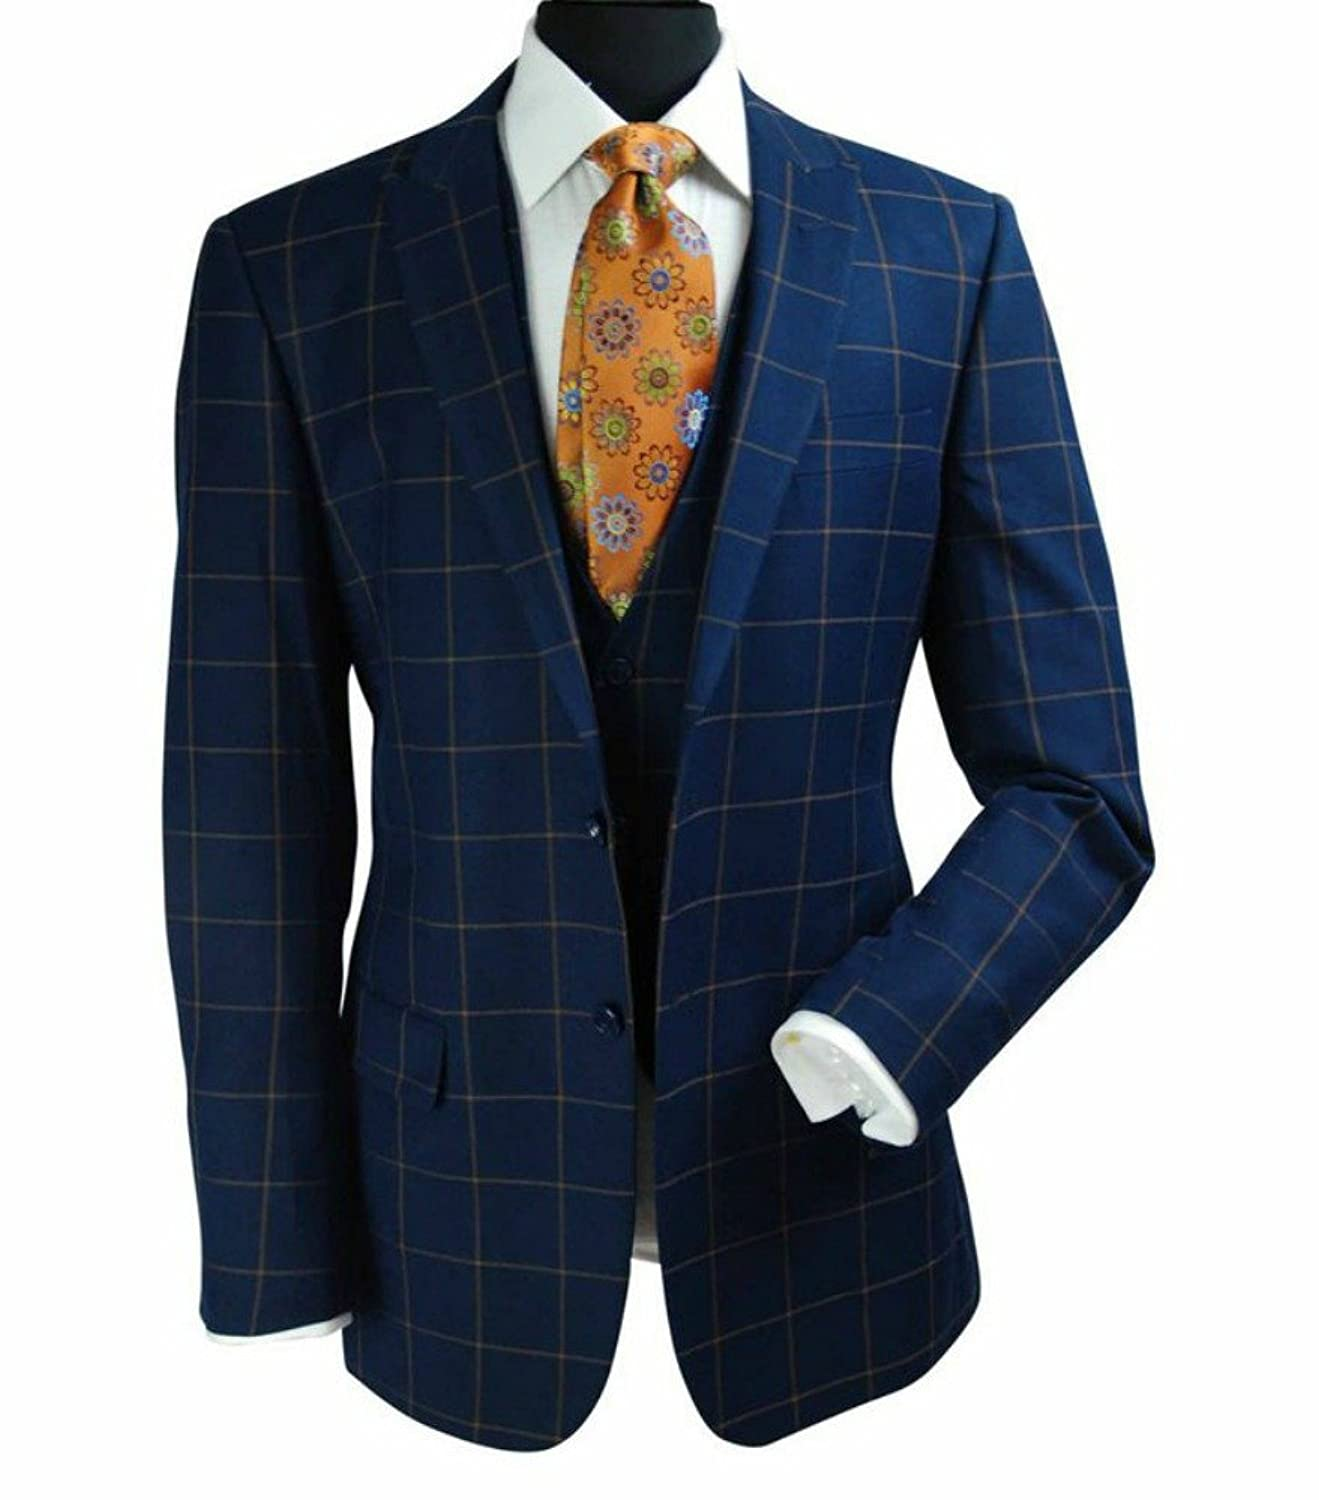 1960s Style Mens Suits- Skinny Suits, Mod Suits, Sport Coats